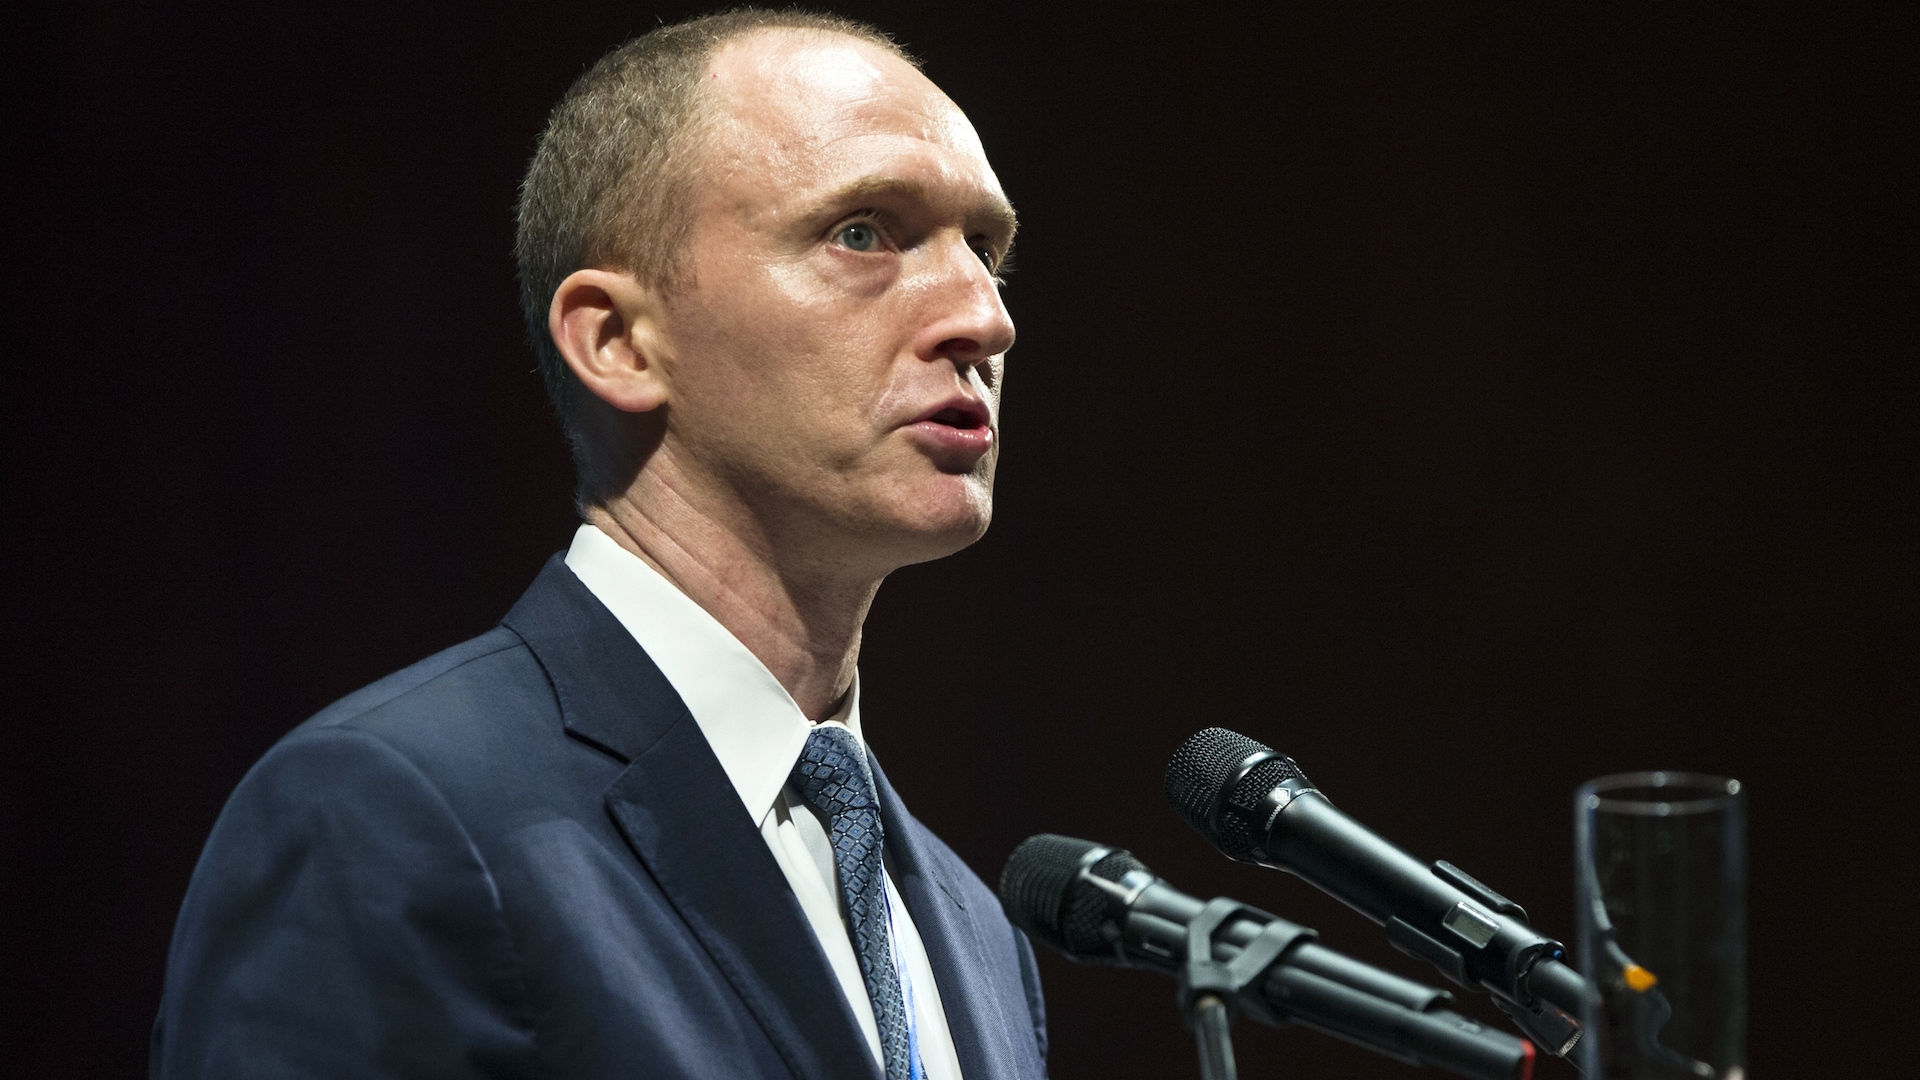 FBI obtained FISA warrant to monitor Trump adviser Carter Page